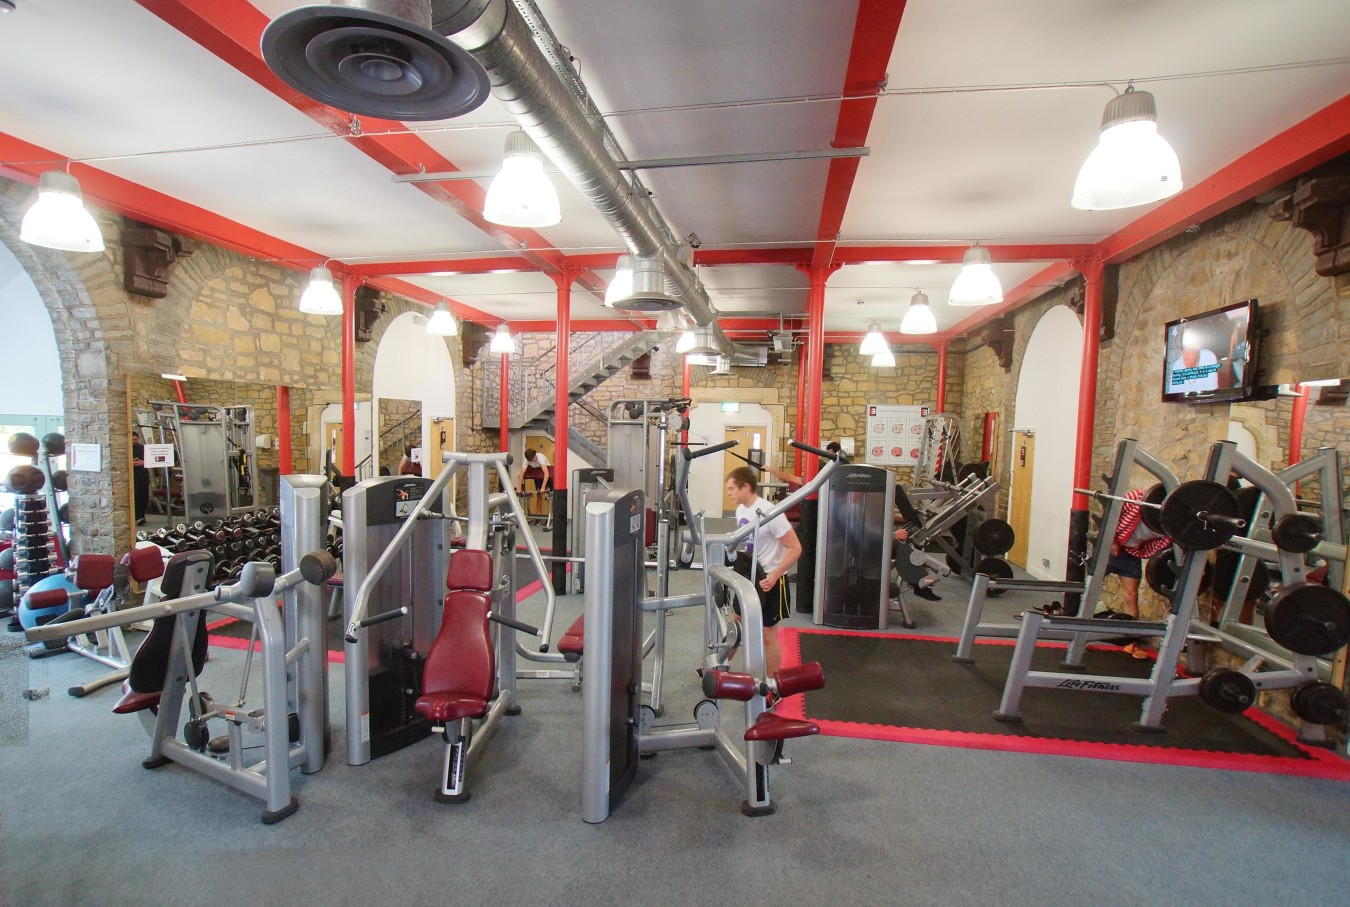 Design by Fitness Correct Form for Lifting Weights in the Gym